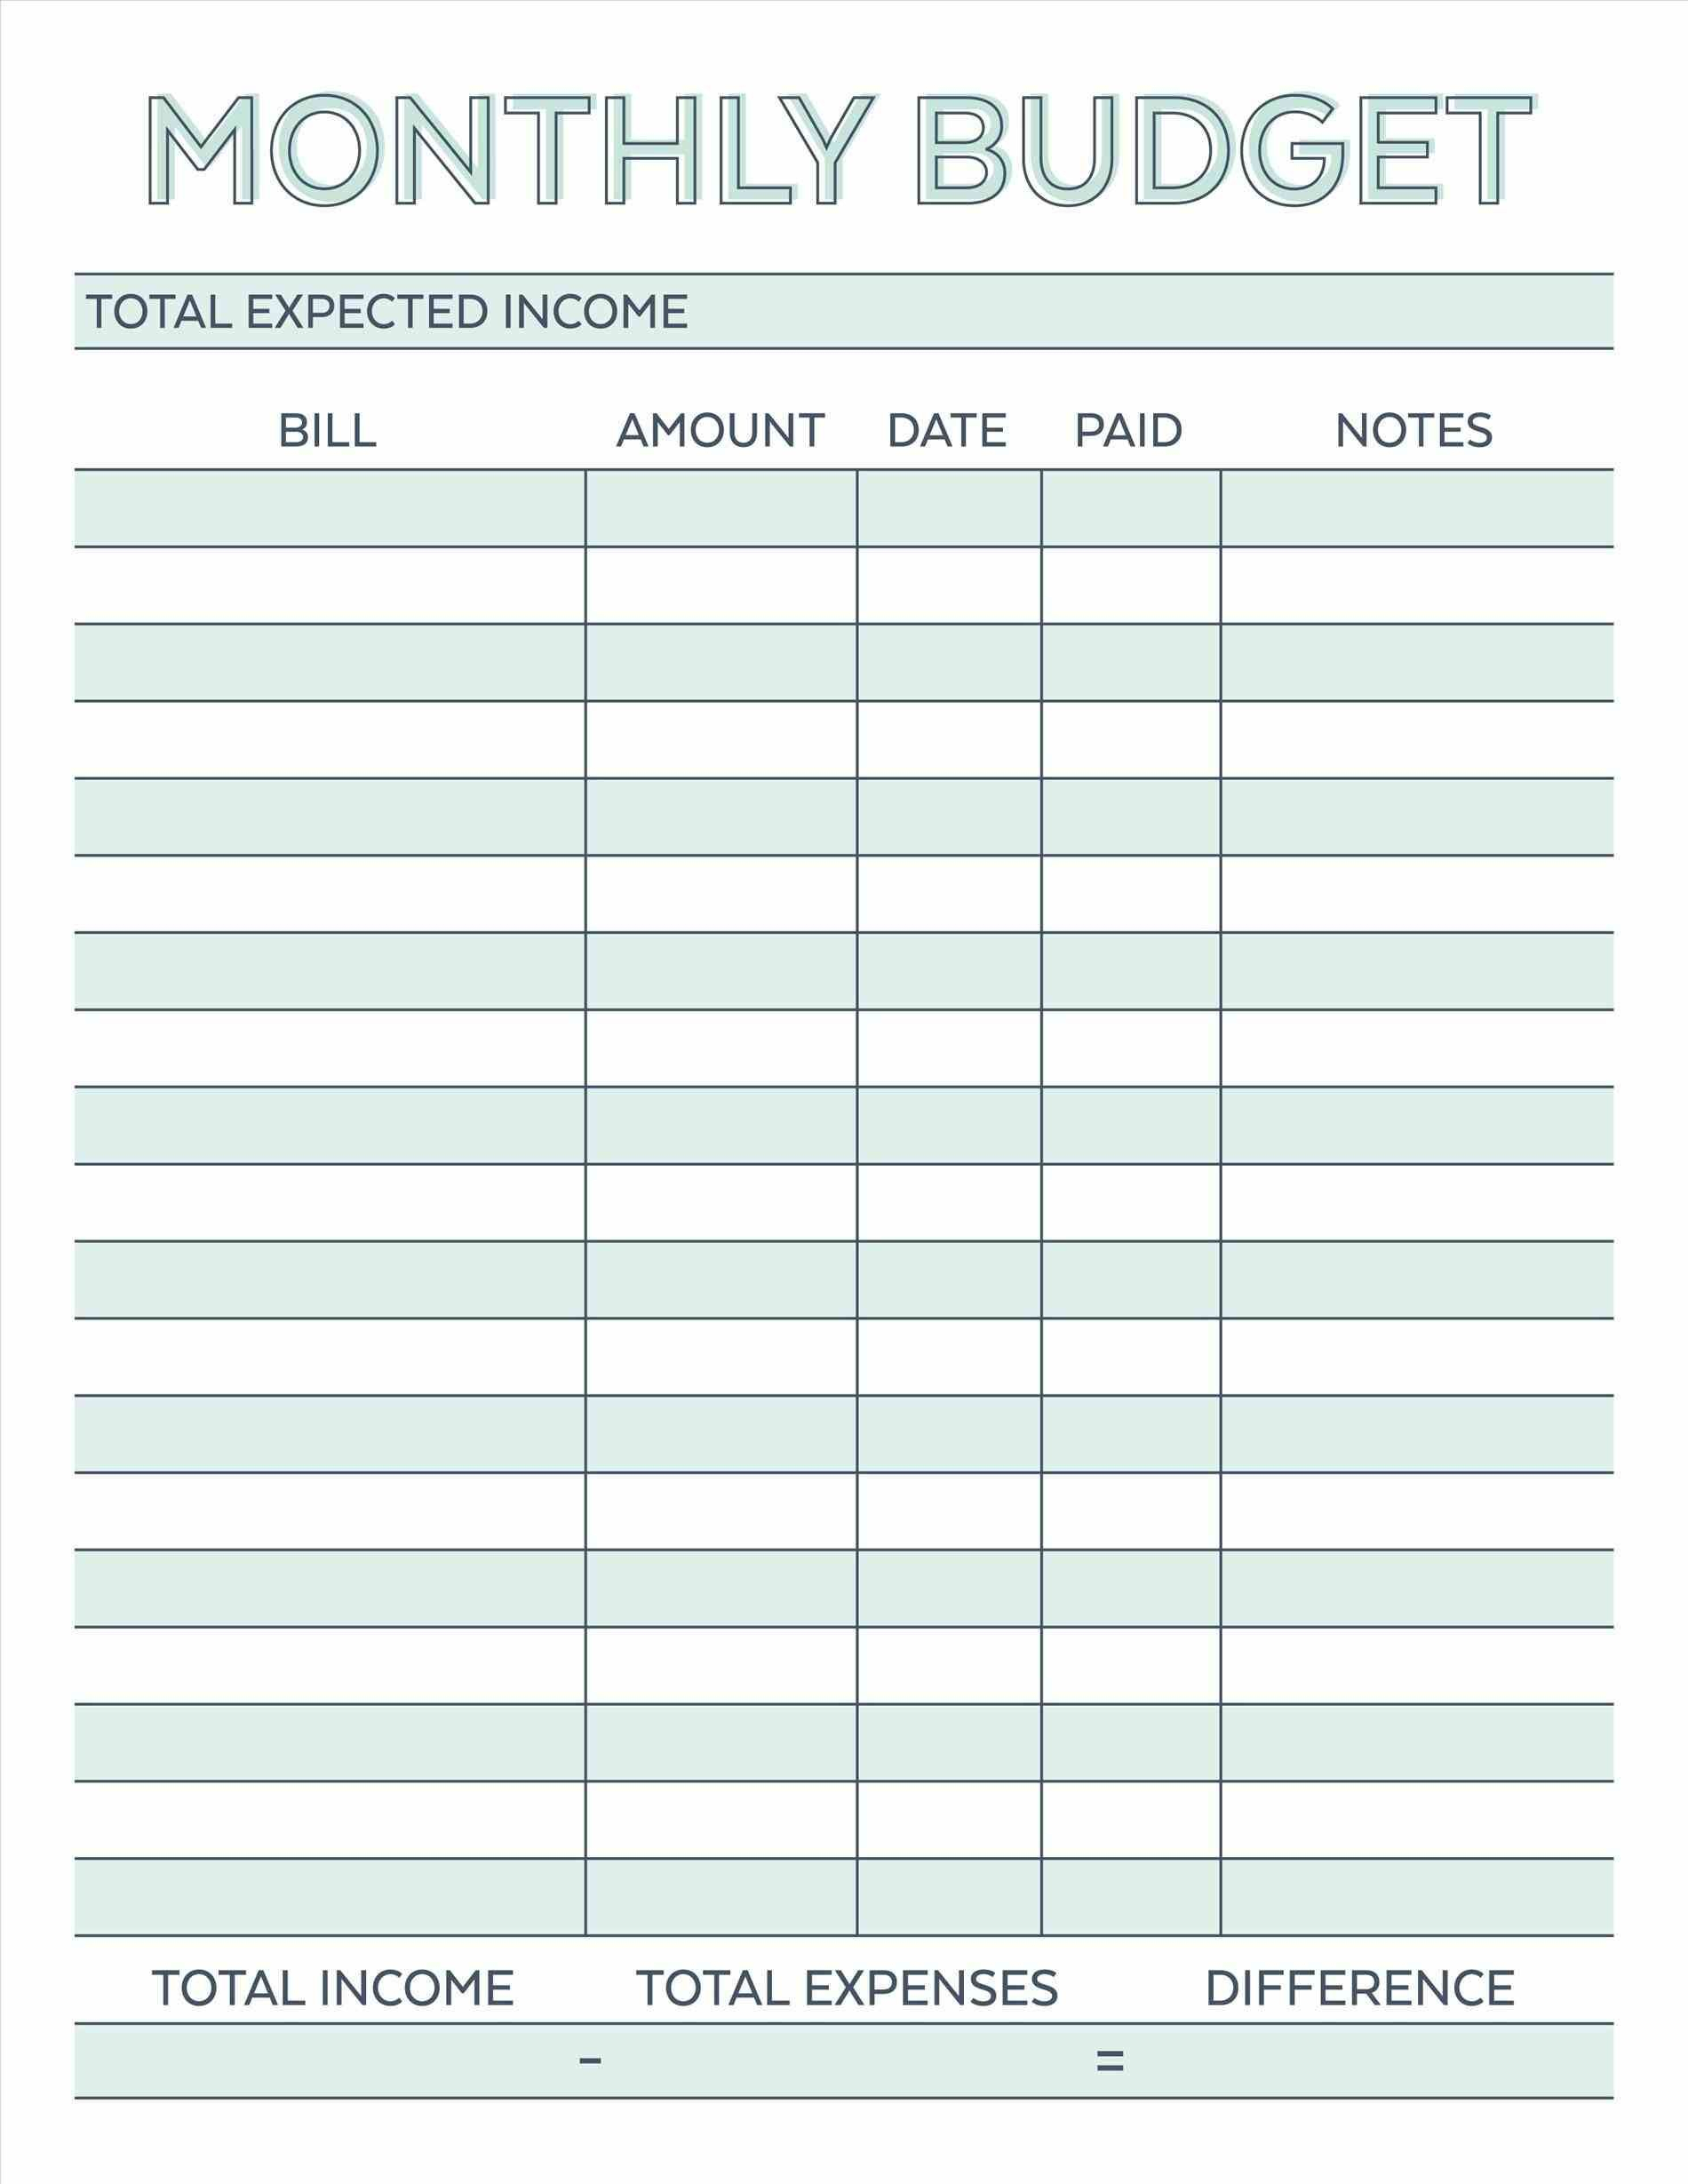 Budget Planner Planner Worksheet Monthly Bills Template Free | Free Printable Monthly Bill Payment Worksheet